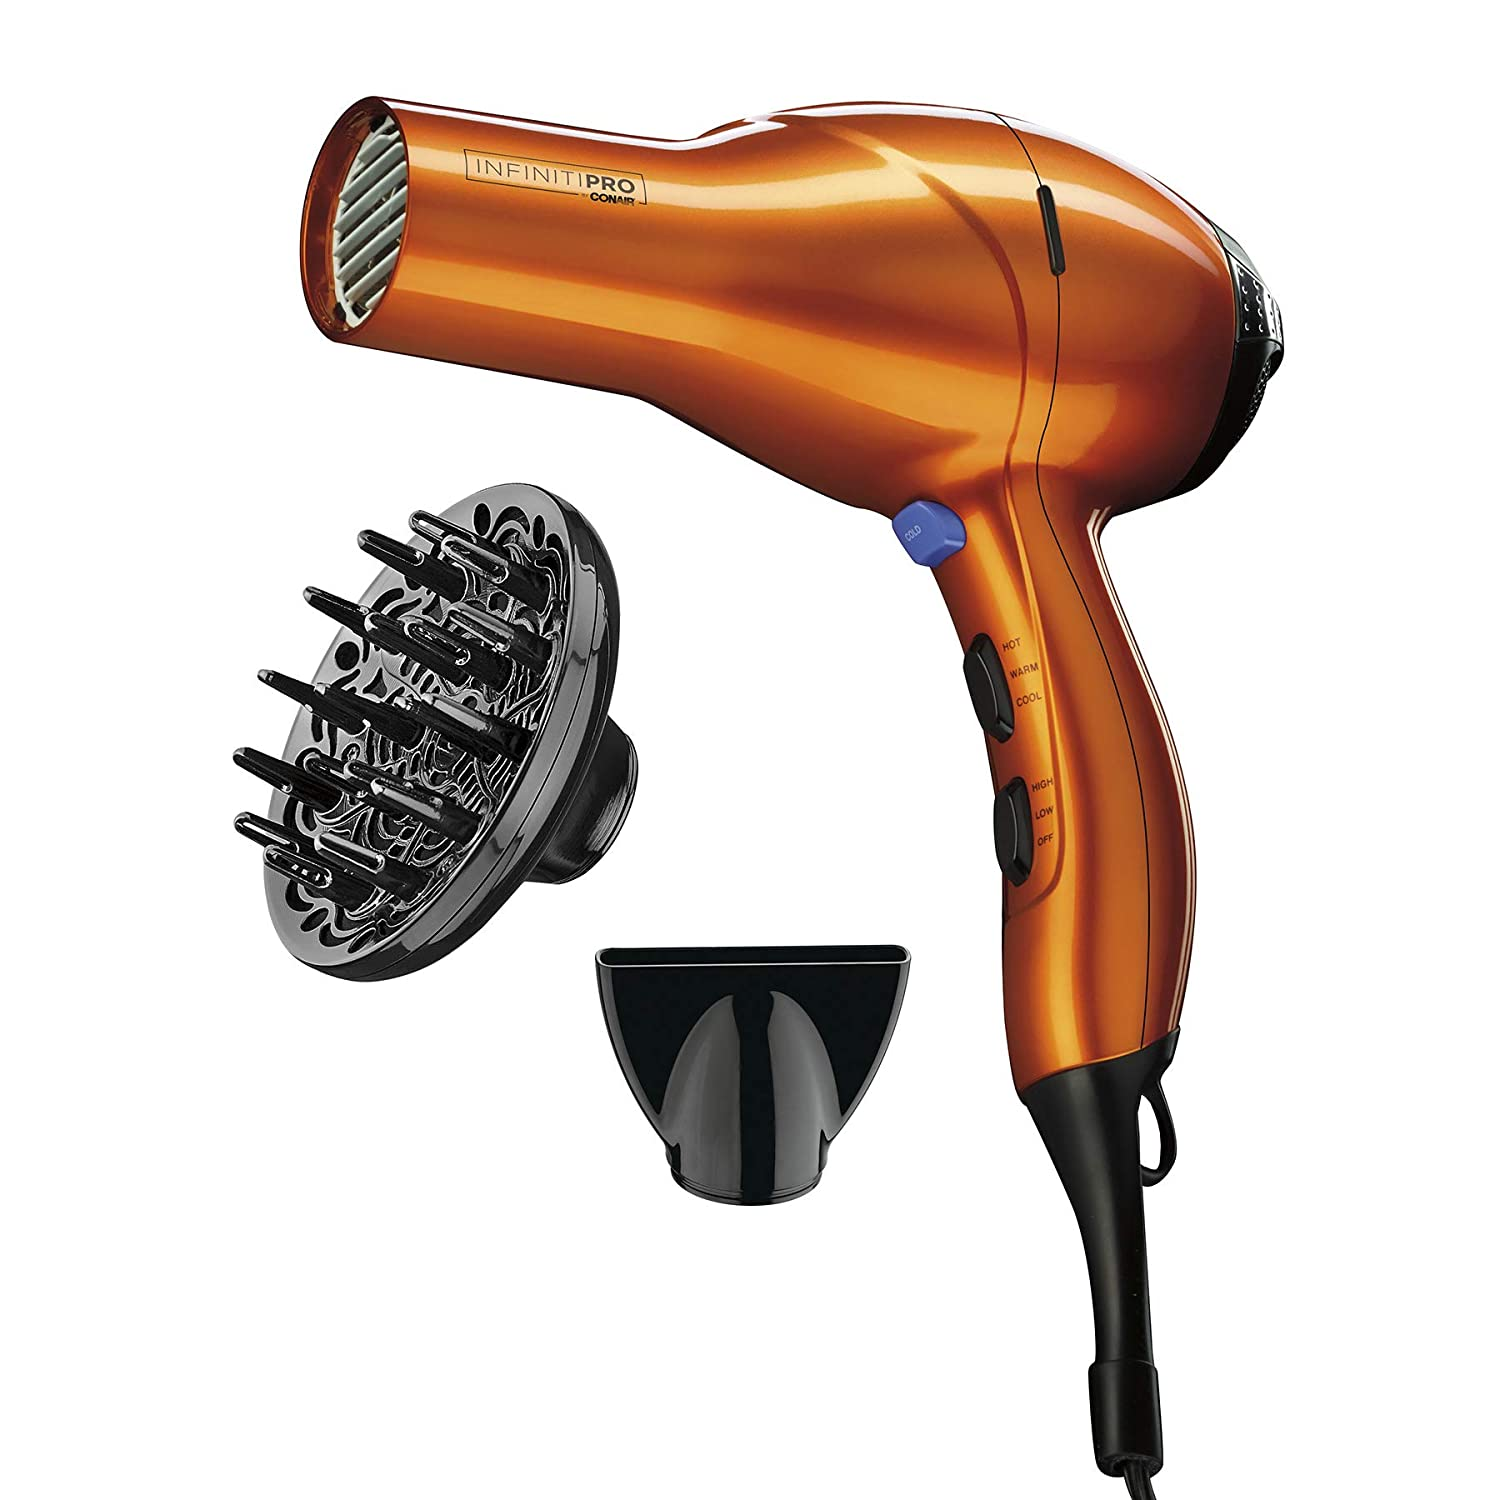 INFINITIPRO BY CONAIR 1875 Watt Salon Performance AC Motor Styling Tool Hair Dryer Orange